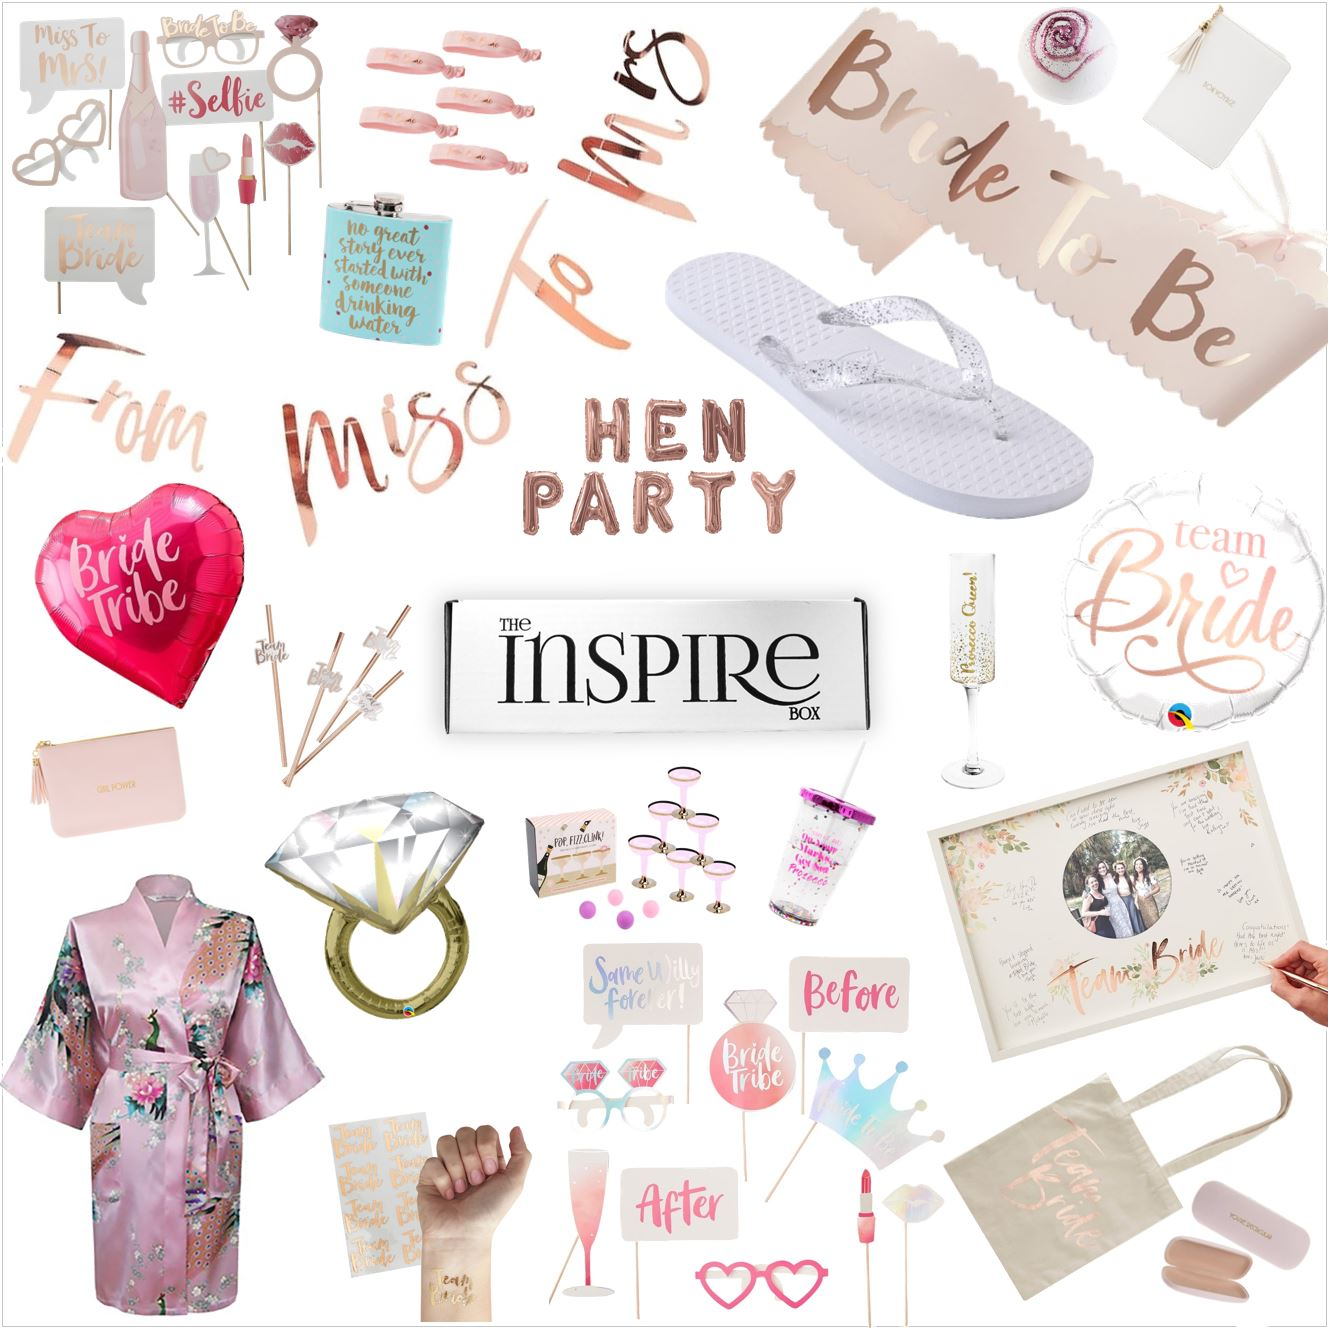 Hen party supplies are included in your box